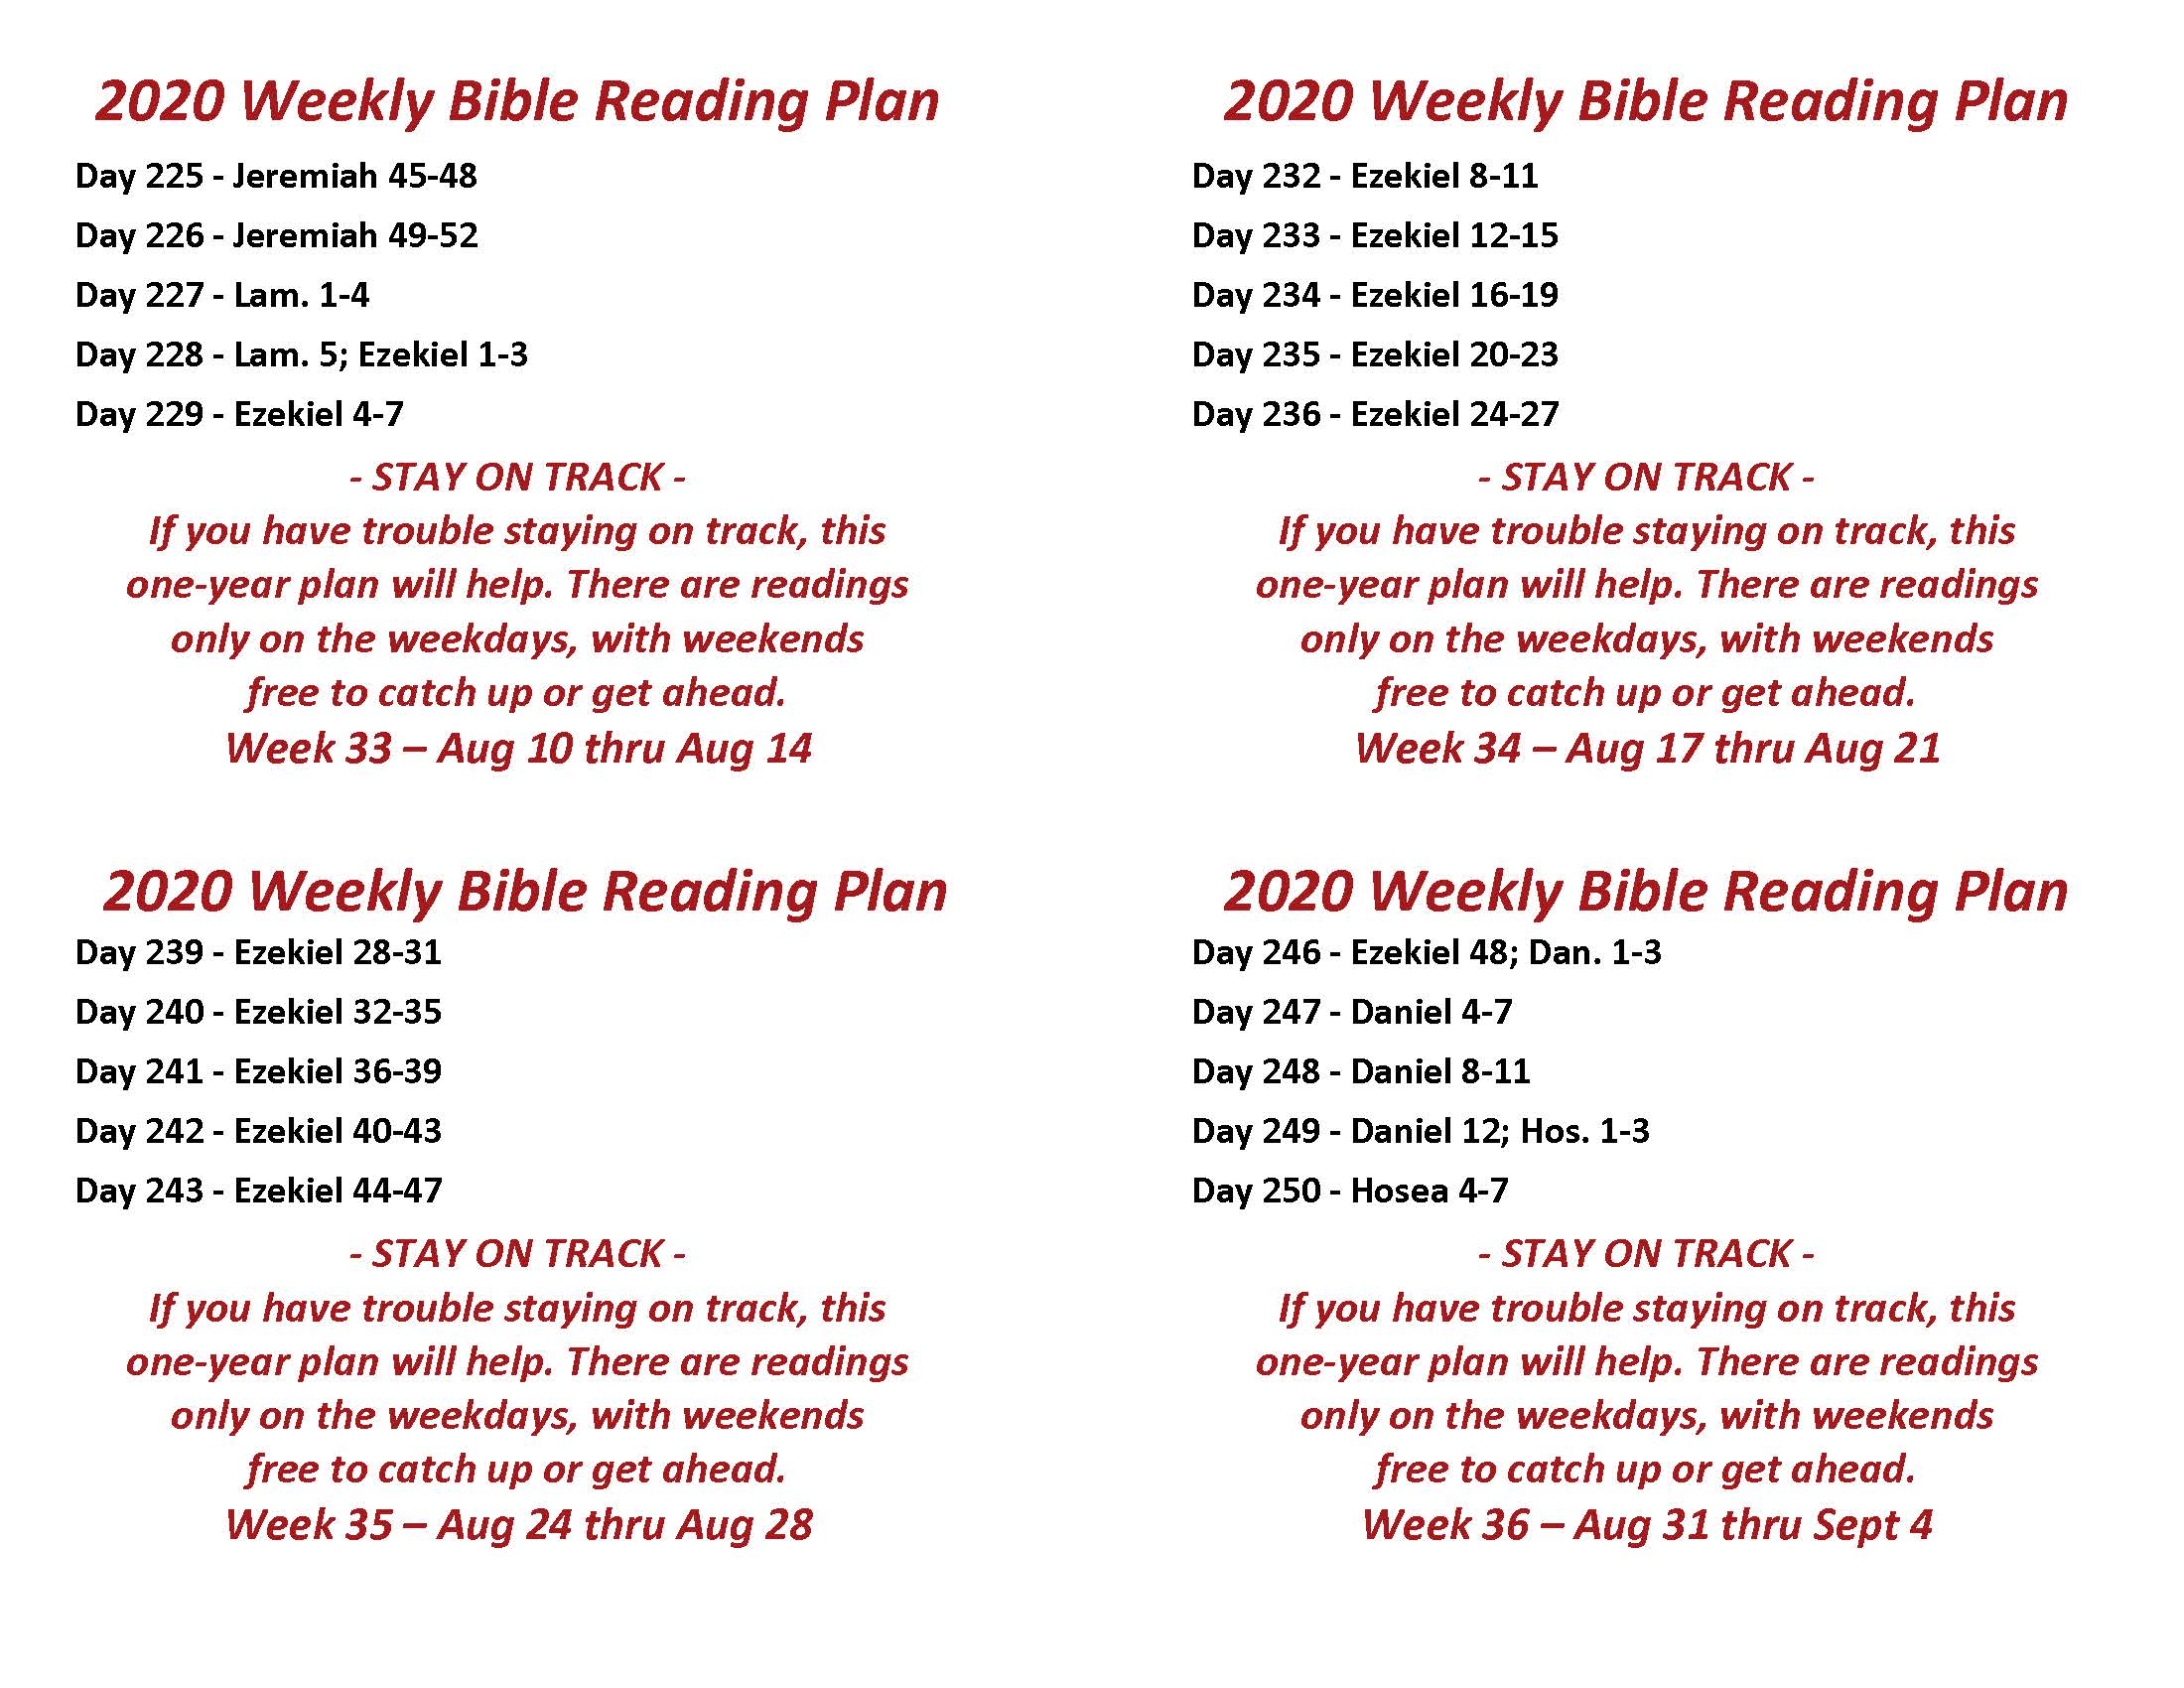 Read the Bible Through in a Year Wk 33-36, Aug 3 thru Sept 4